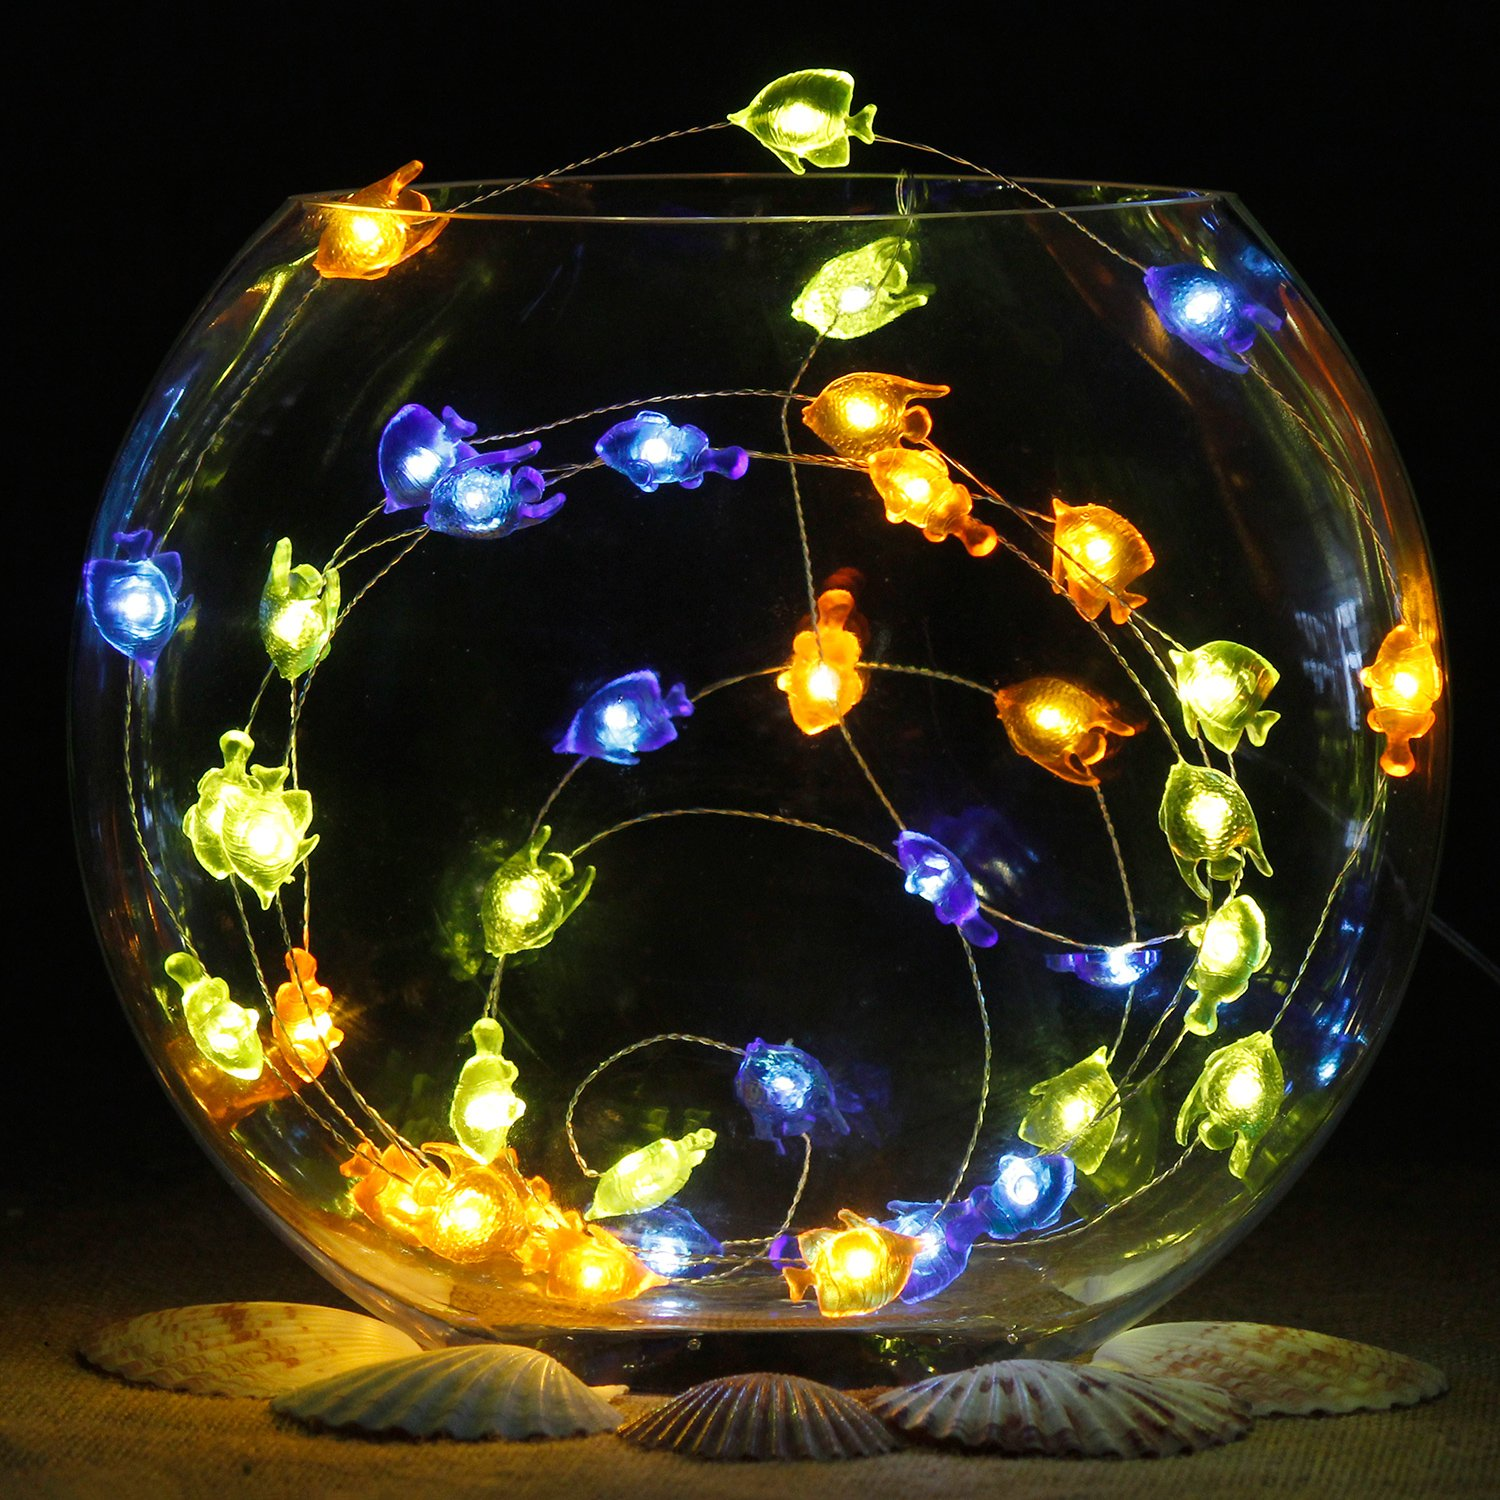 Impress Life Nautical Themed Party Decorations, Tropical Small Fish Led Blue Green Orange Battery-powered String lights 10ft 40 Led Silver Wire with Remote for Indoor Covered Outdoor Patio Bedroom Wed